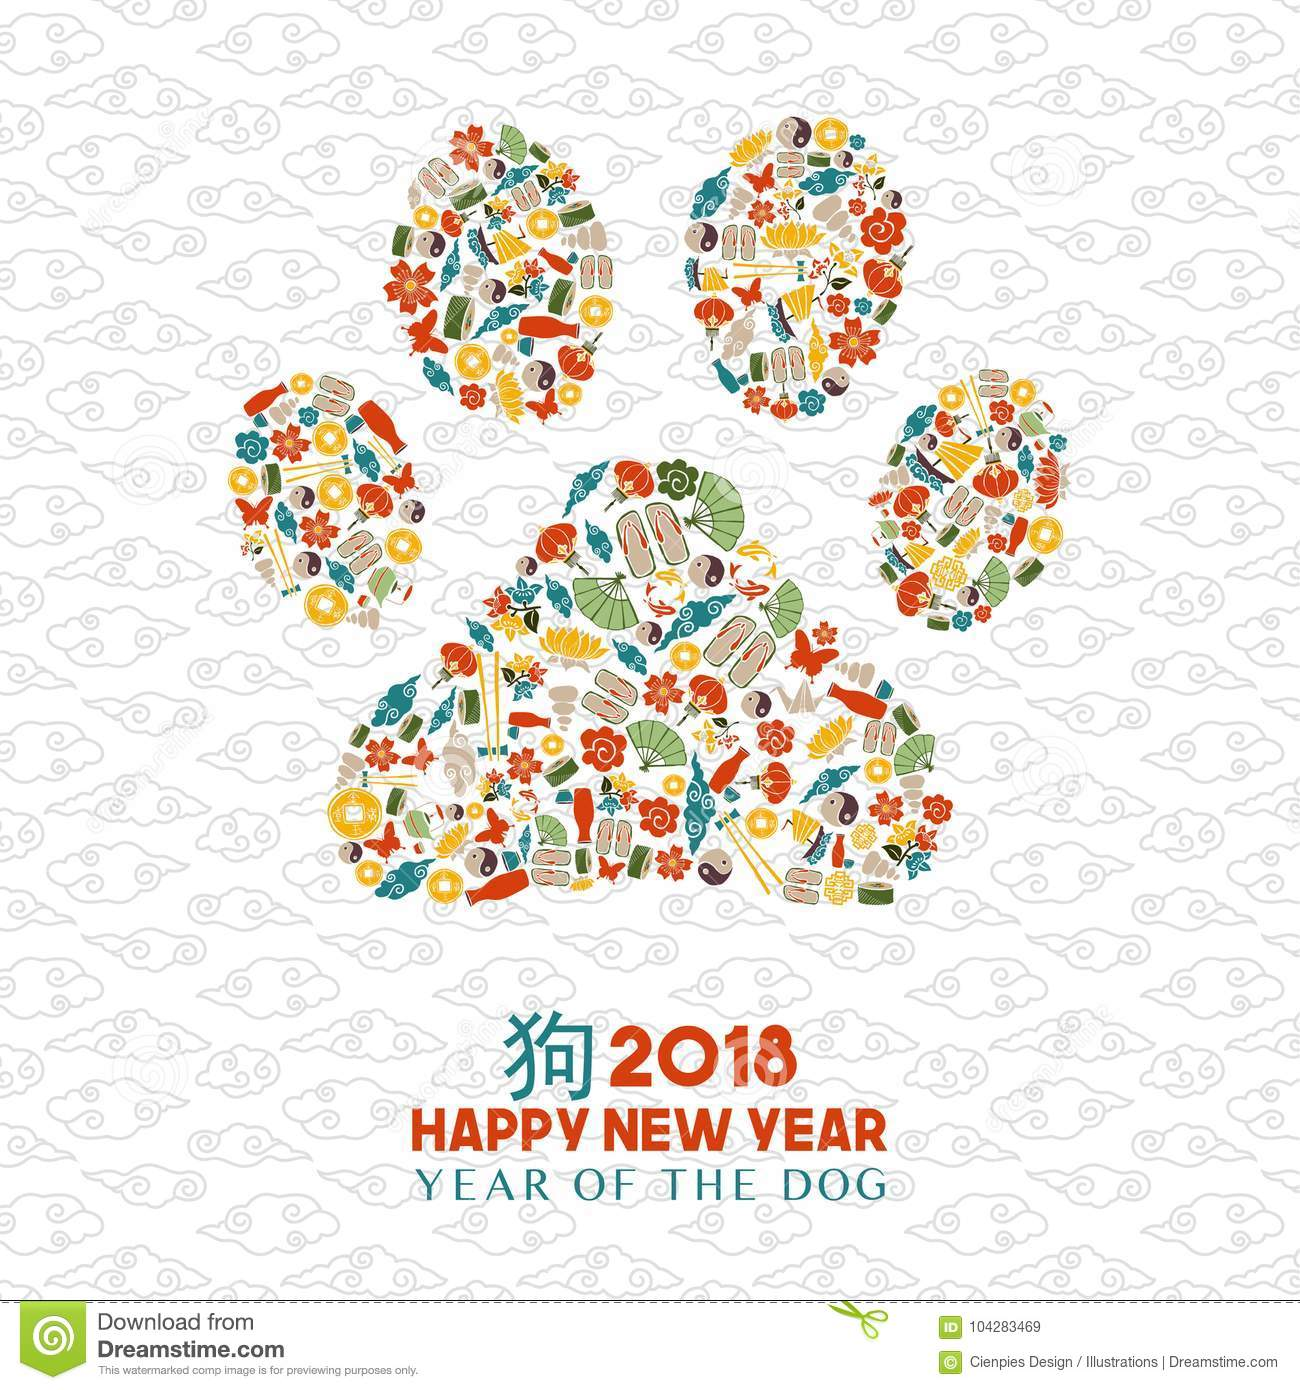 Chinese new year 2018 dog paw icon shape card